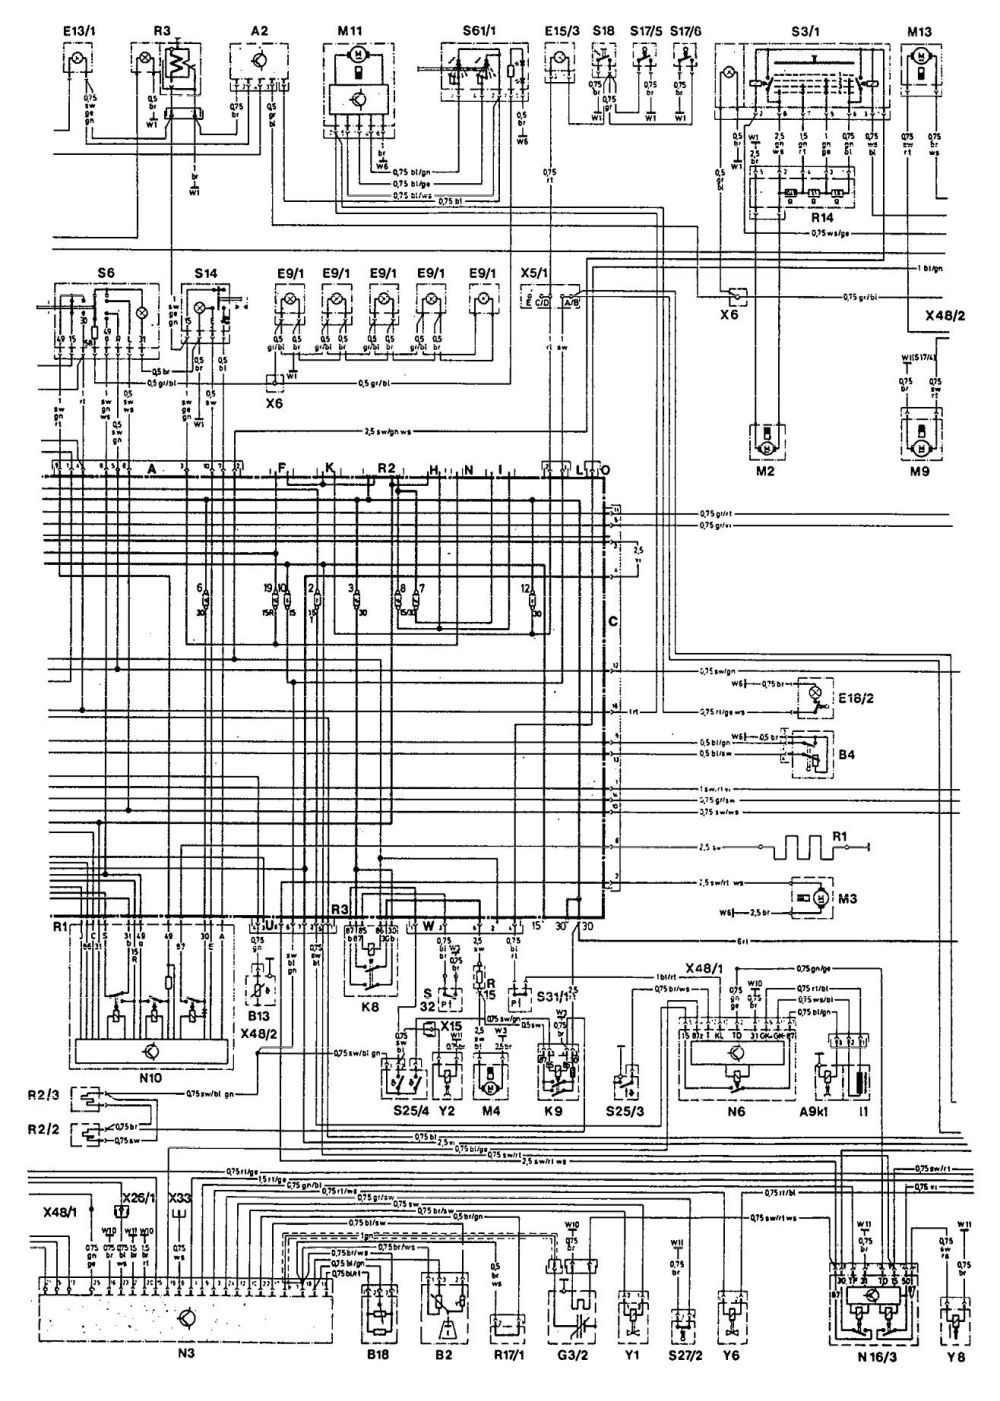 medium resolution of 1992 mercedes benz e190 fuse box car wiring diagram wire data schema u2022 rh kiymik co